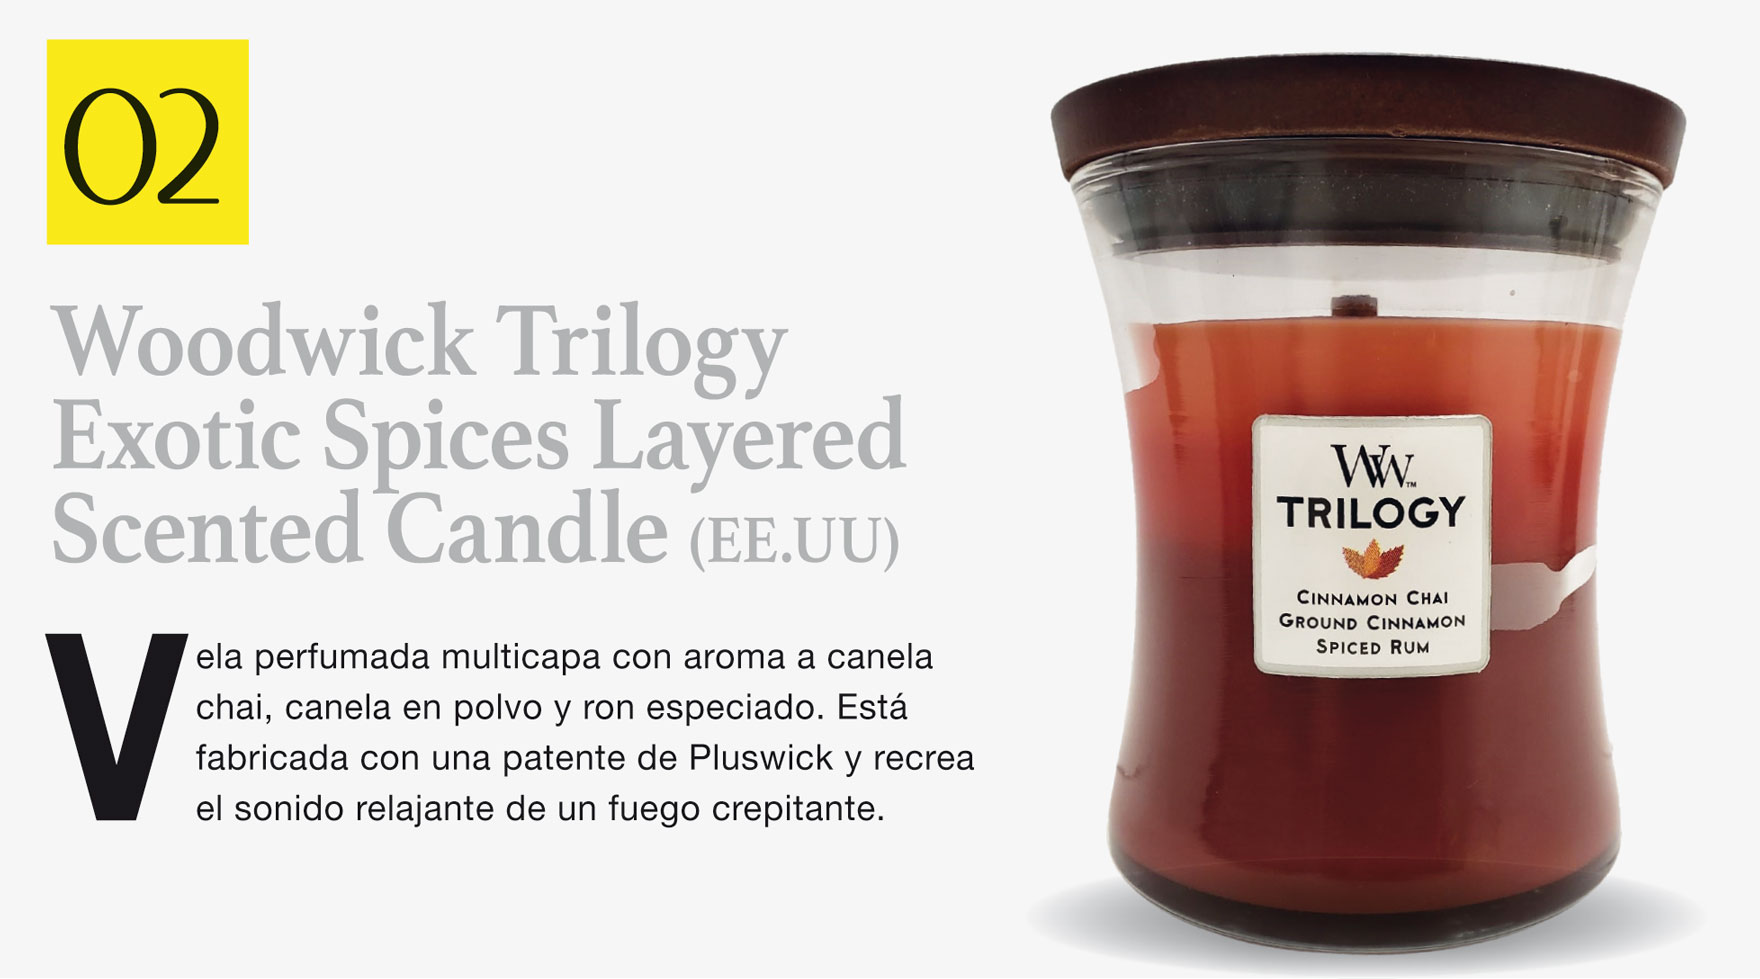 Woodwick Trilogy Exotic Spices Layered Scented Candle (EE.UU)